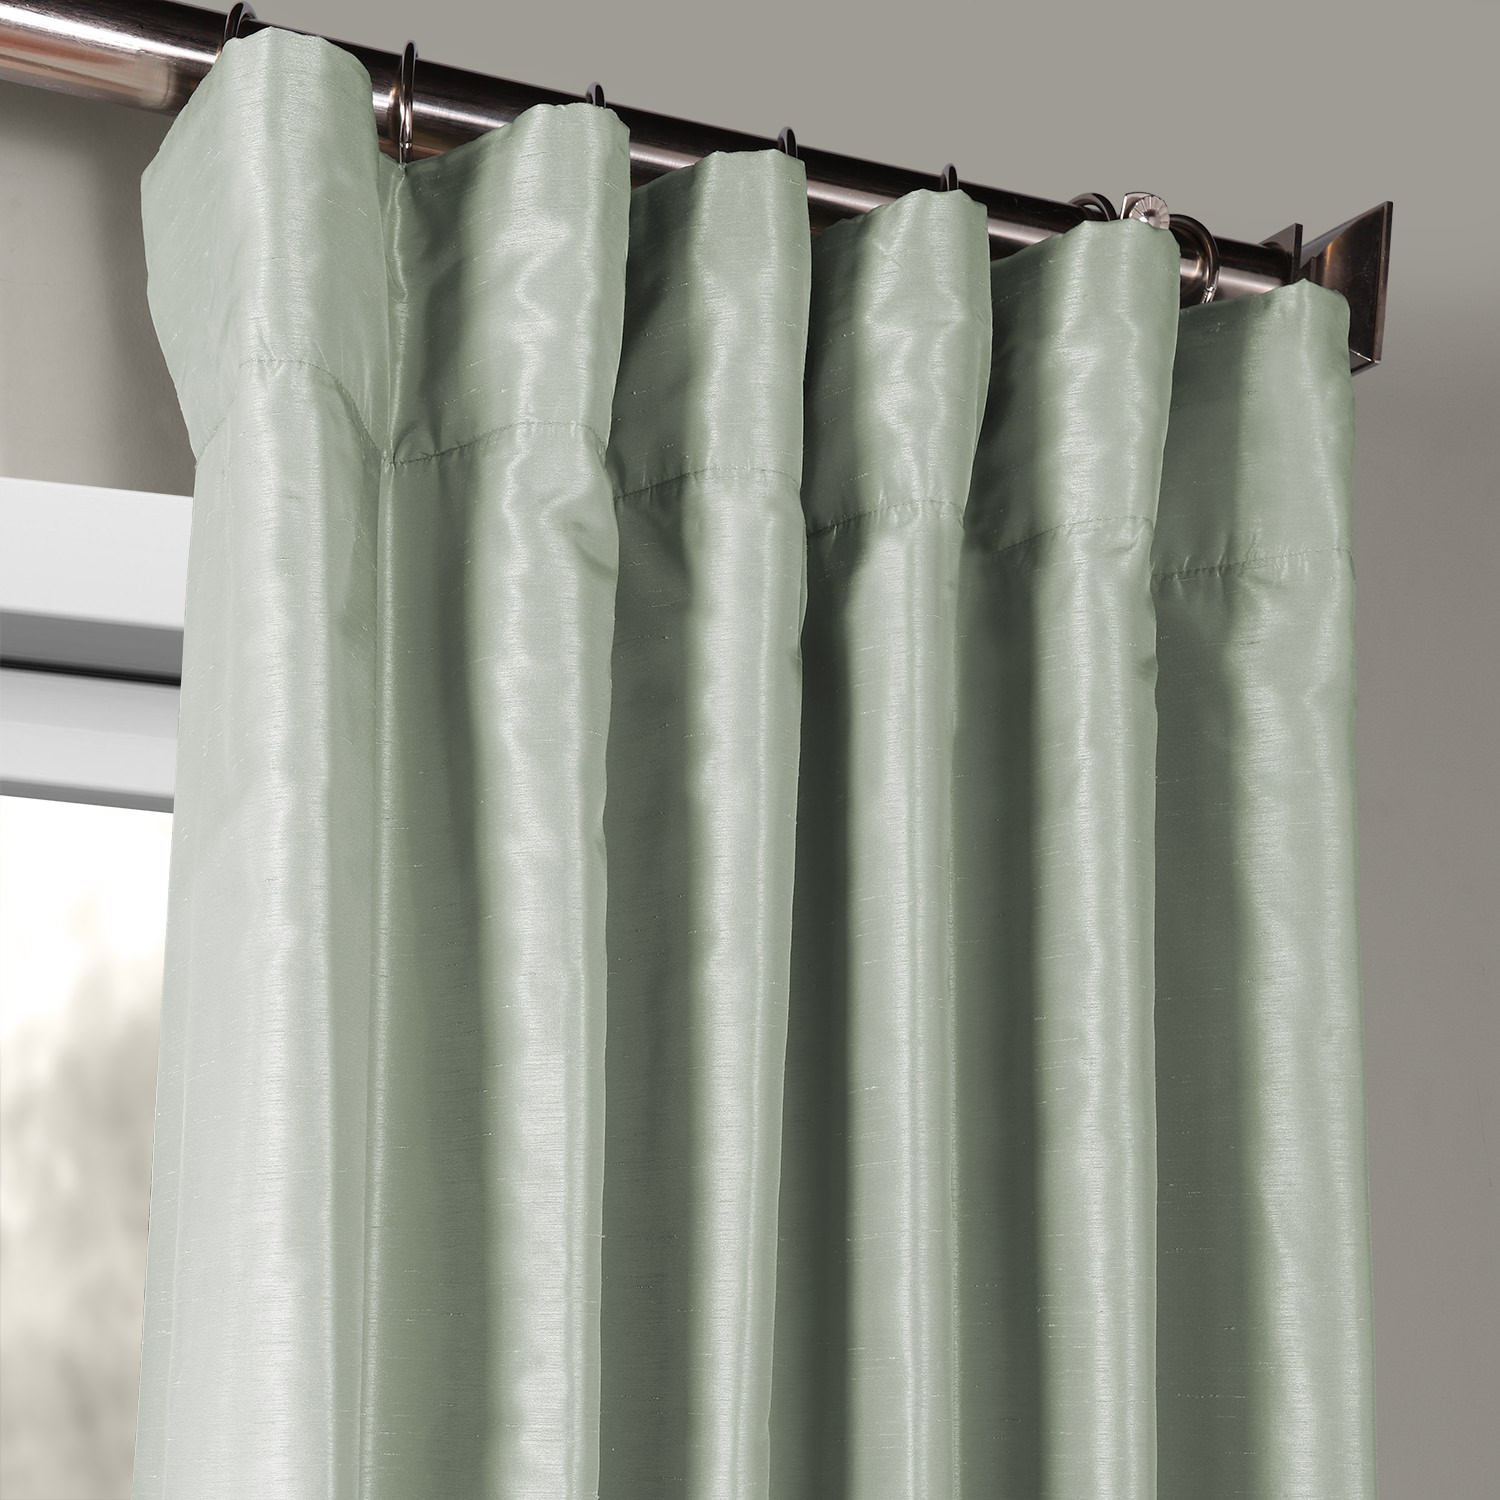 Water Fall Vintage Textured Faux Dupioni Silk Curtain